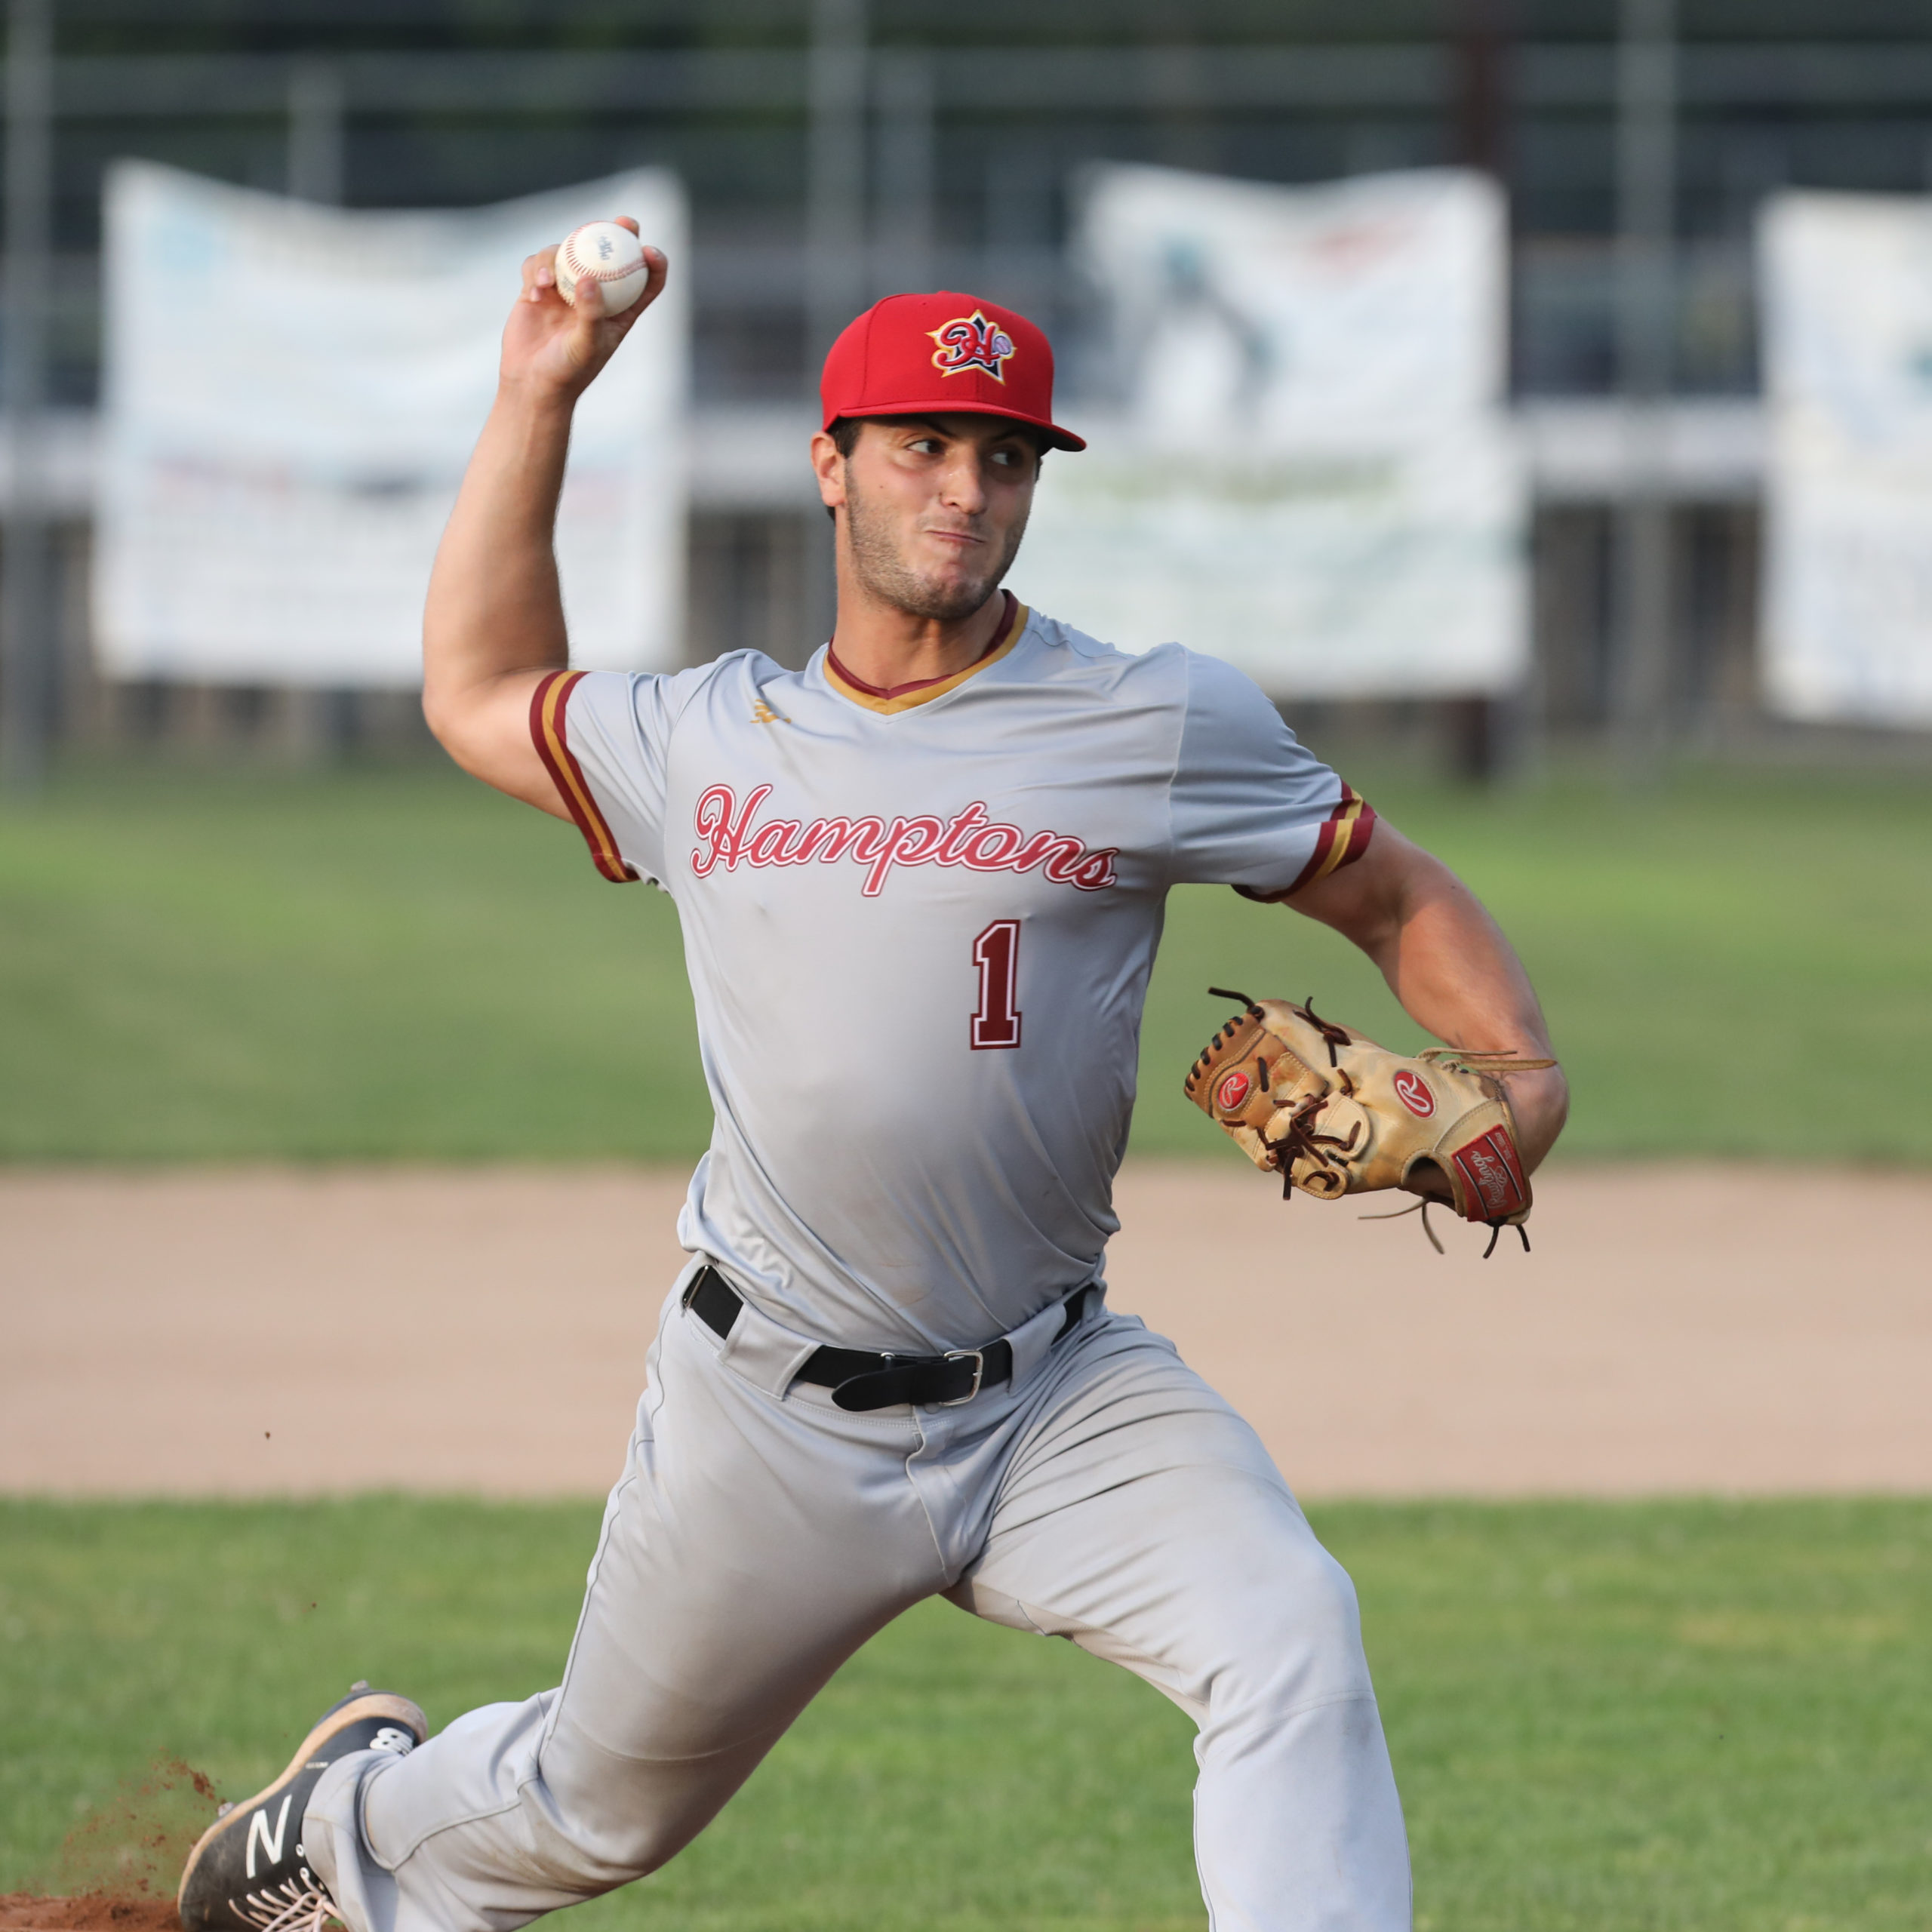 Westhampton Aviator Nic Luc (Adelphi) started on the mound for the Red Team All-Stars and struck out three of the four batters he faced.